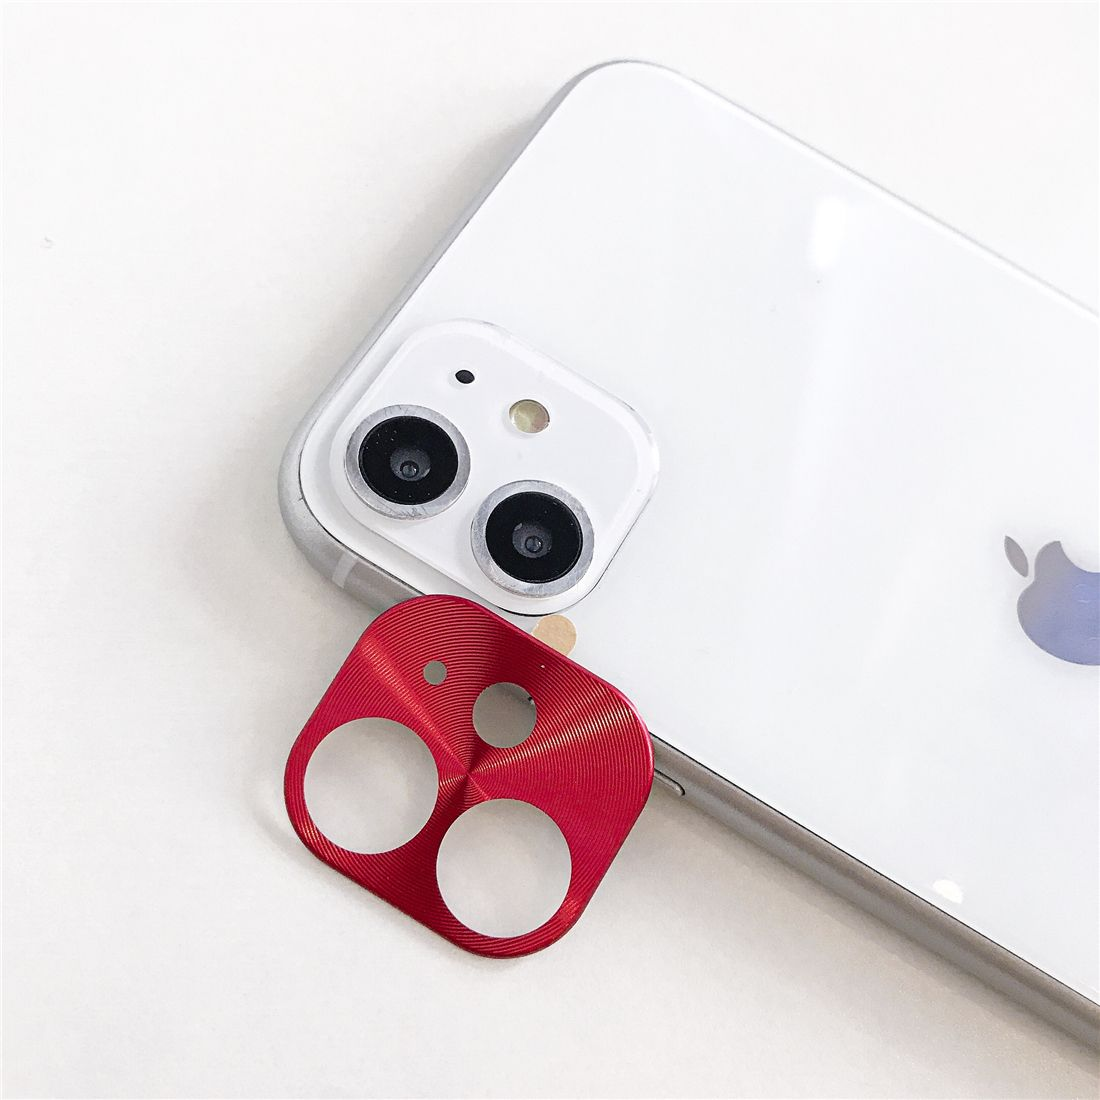 Camera lenses protector bumper ring case for iphone 11 pro